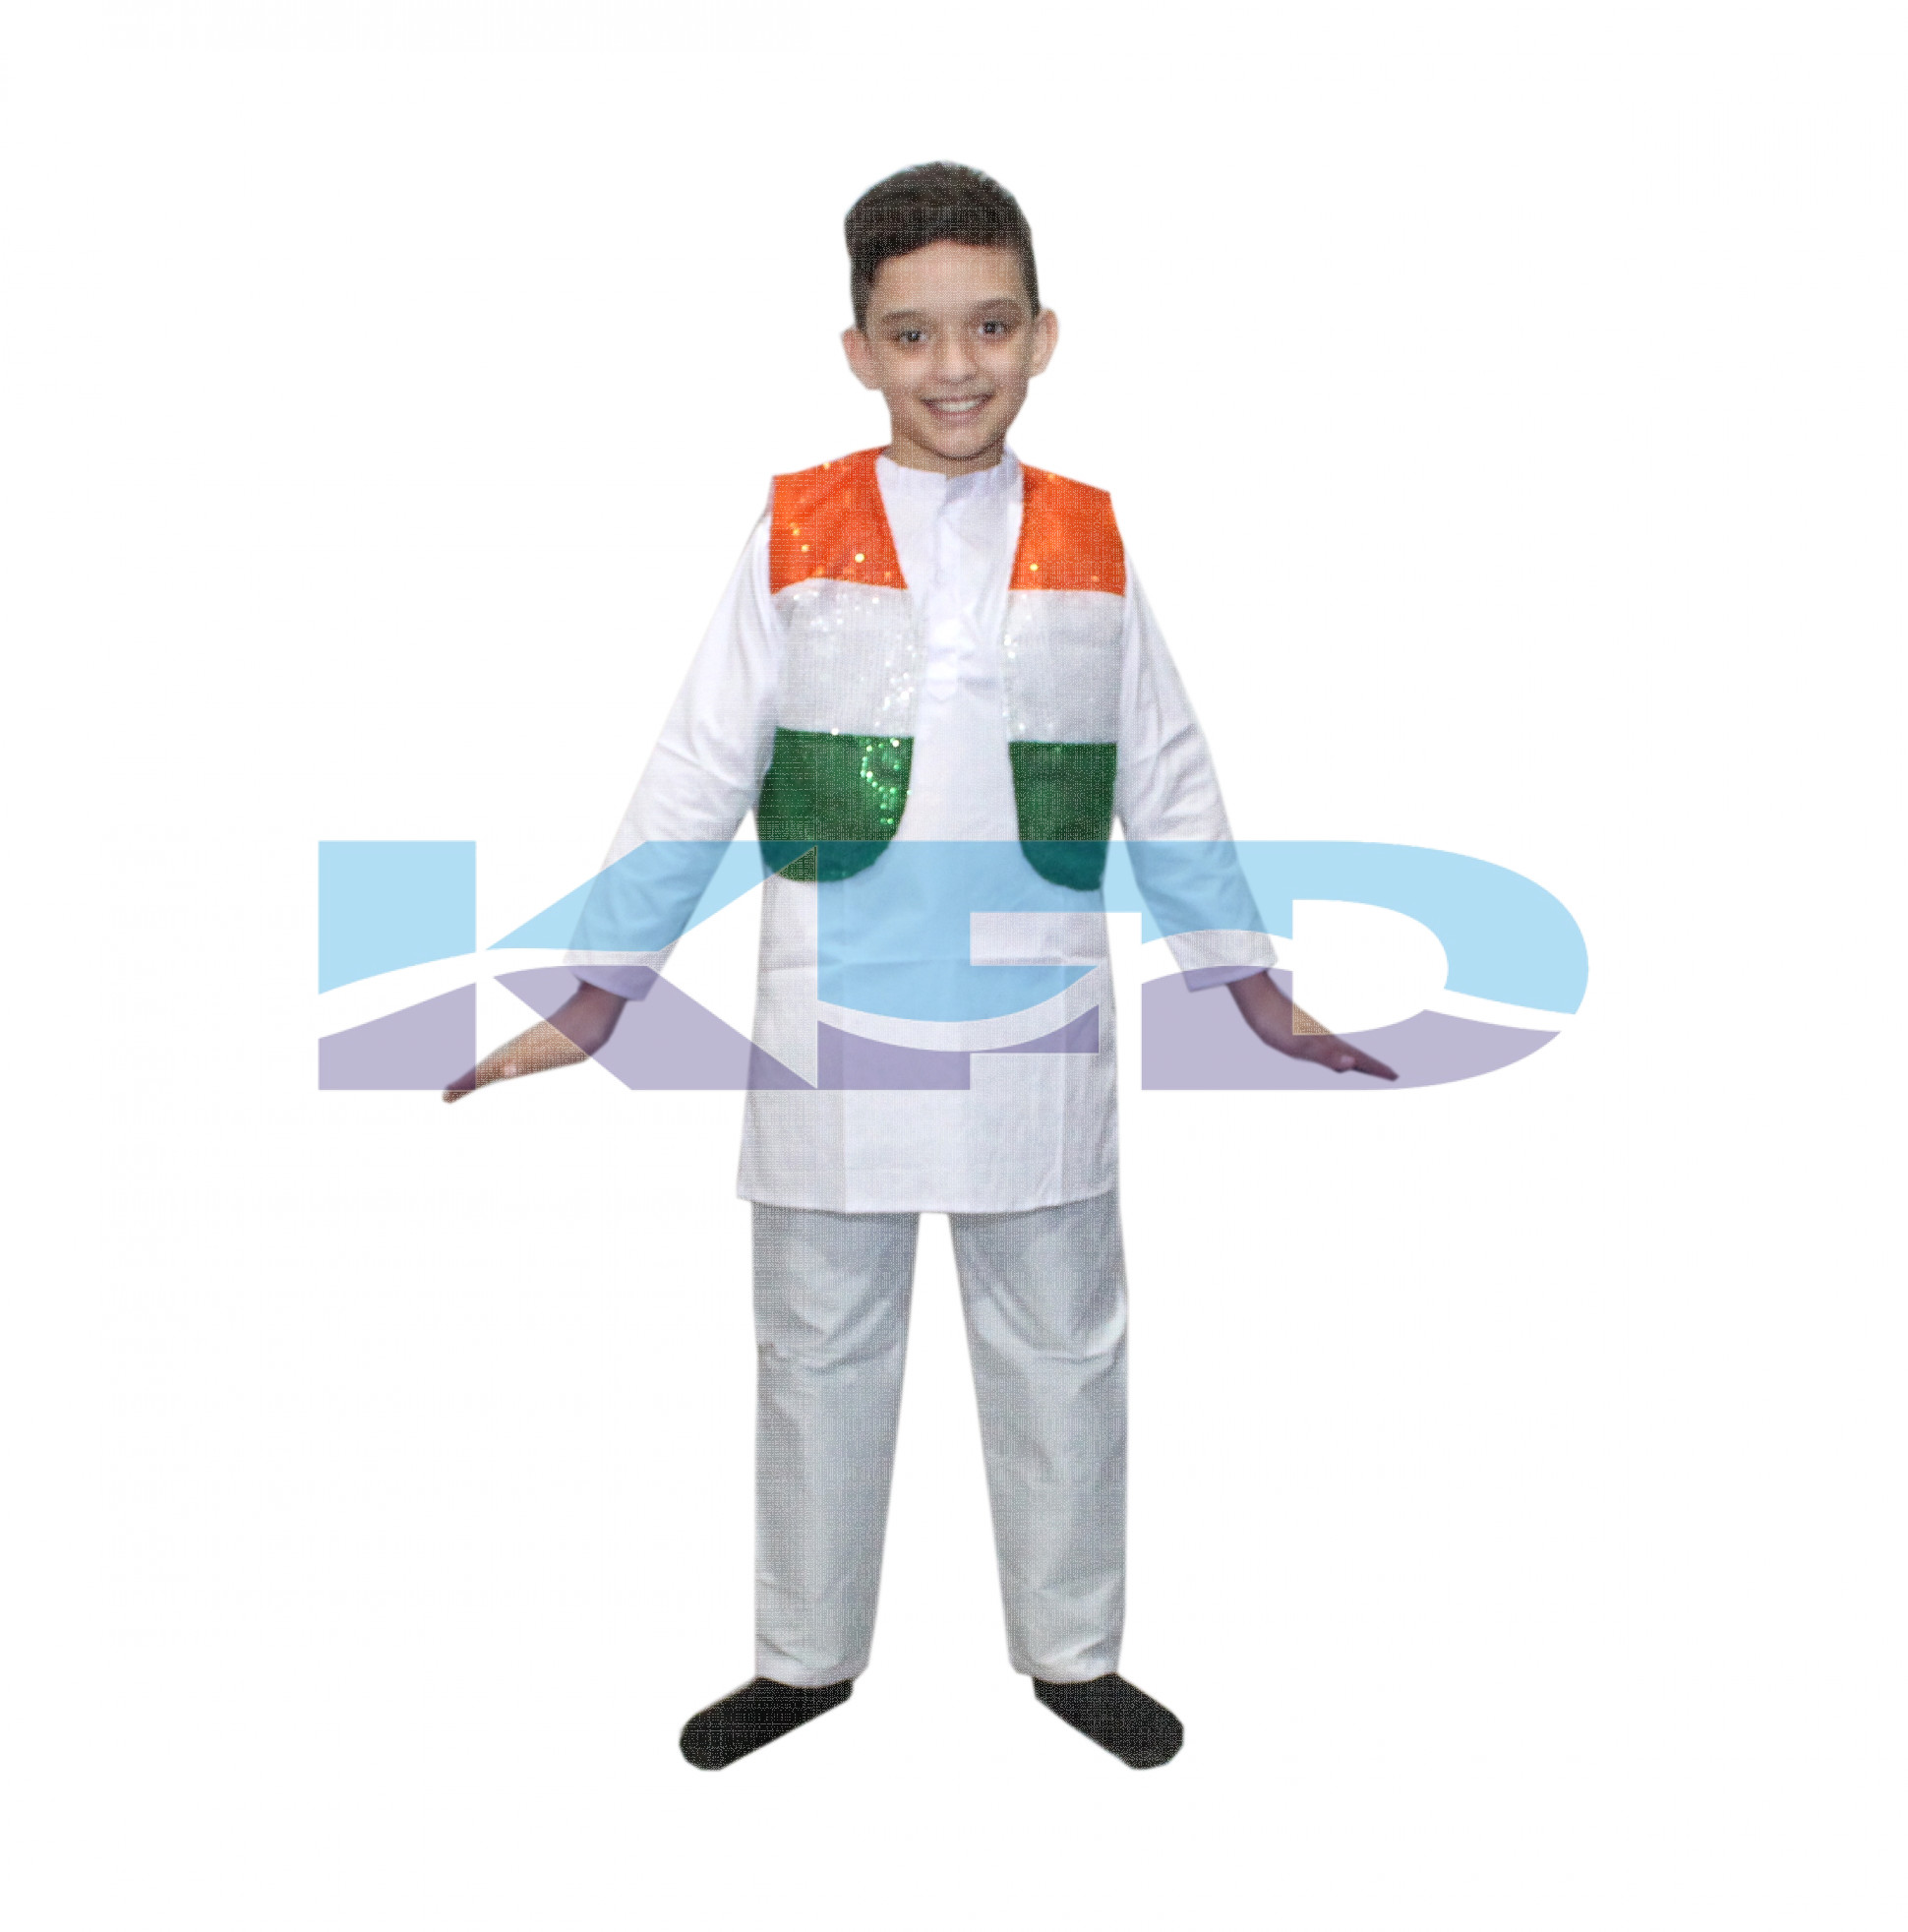 Tri Color Jacket Costume For Kids Independence Day/Republic Day/School Annual function/Theme Party/Competition/Stage Shows/Birthday Party Dress